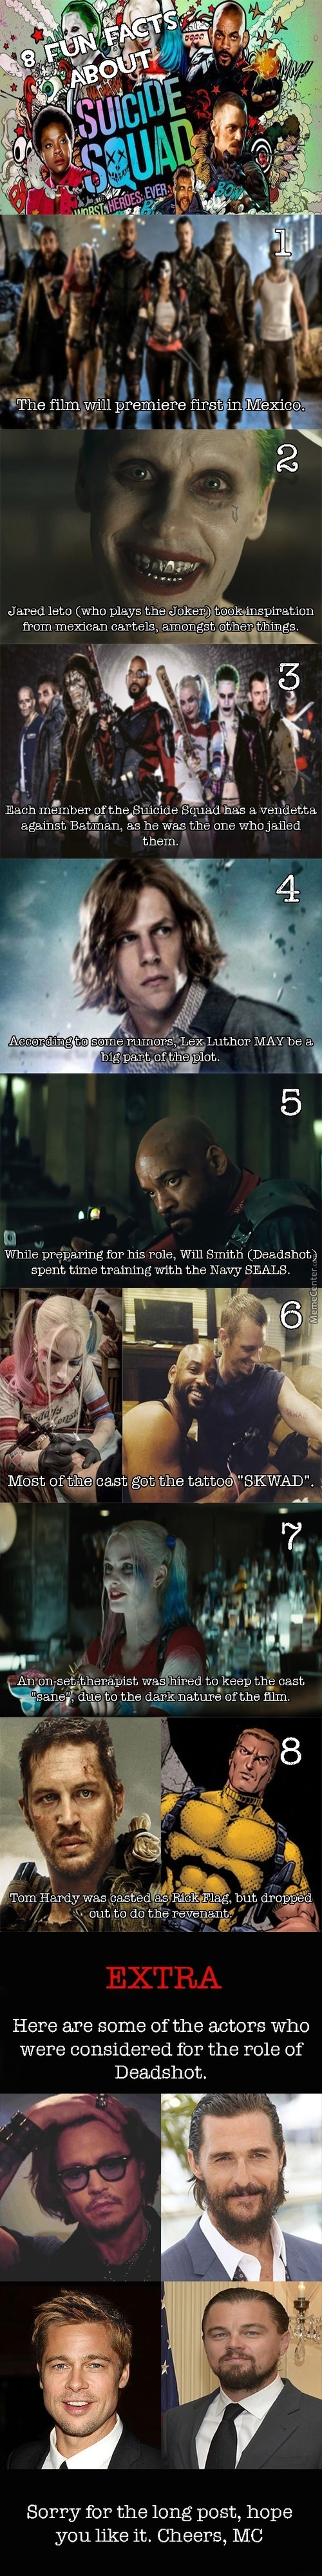 8 Facts You Didn't Know About Suicide Squad